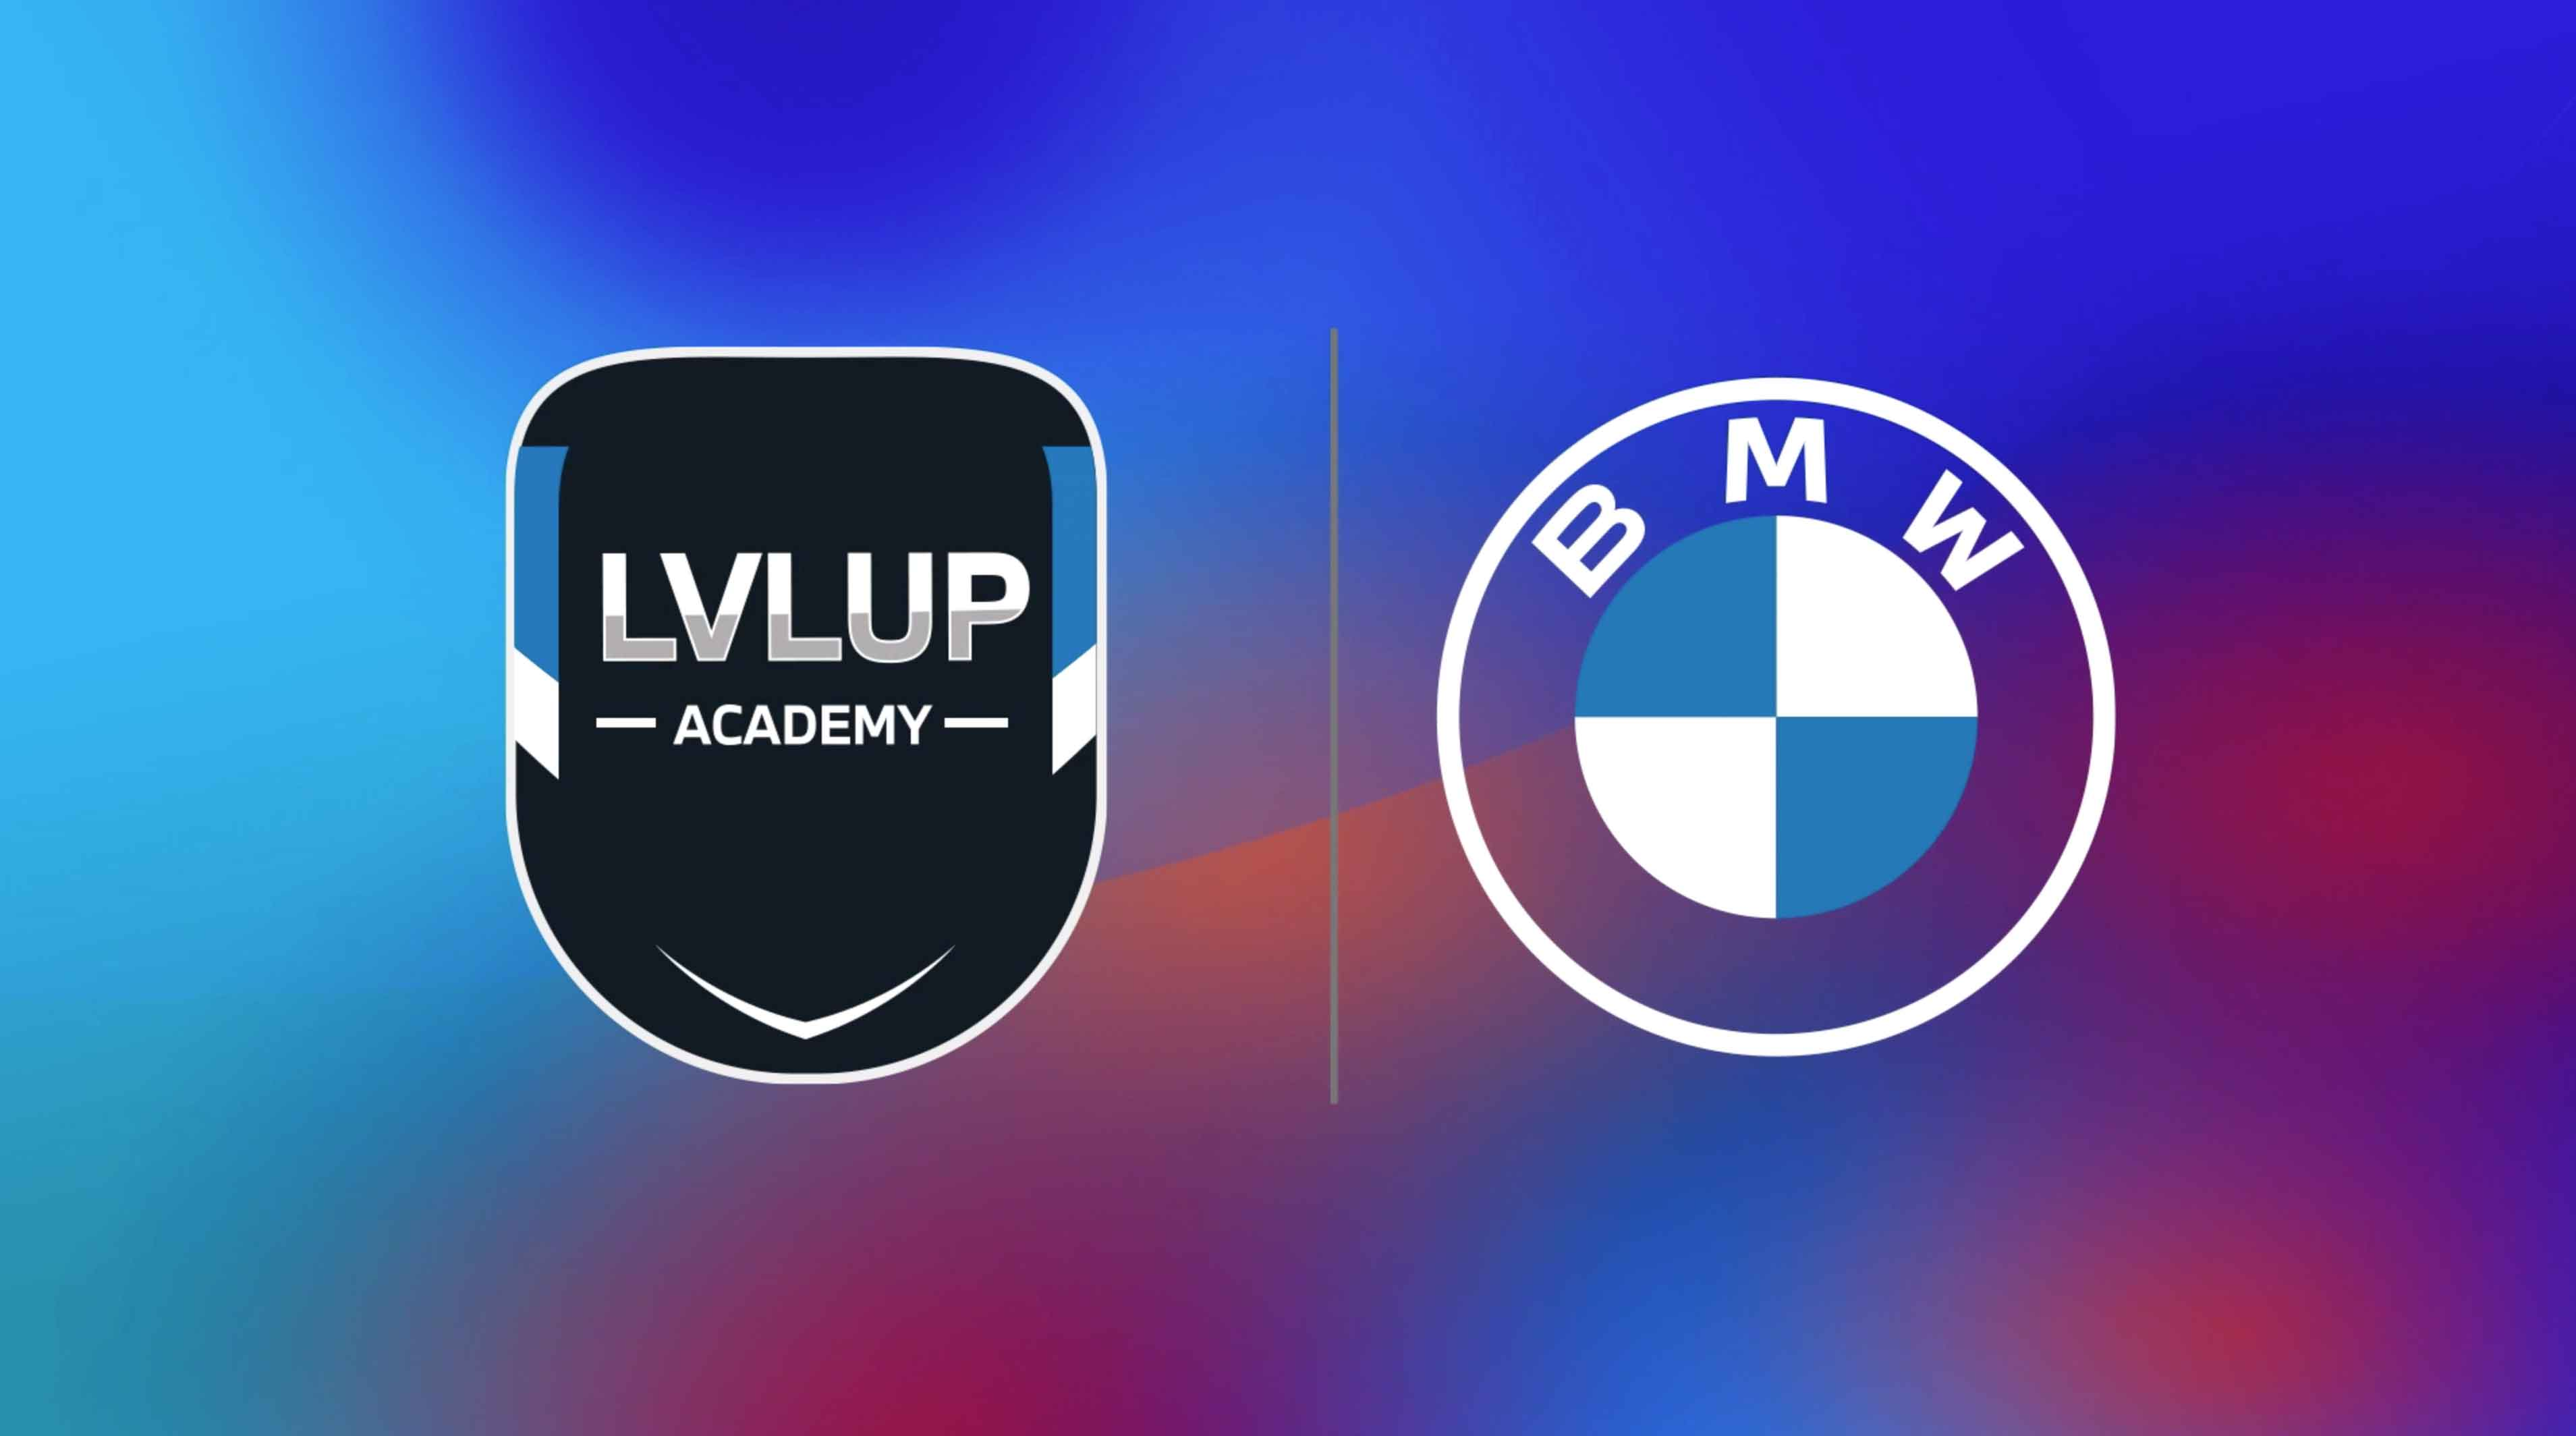 BMW Group Middle East launches LVL Up Academy hosted by the region's most sought out professional gamers